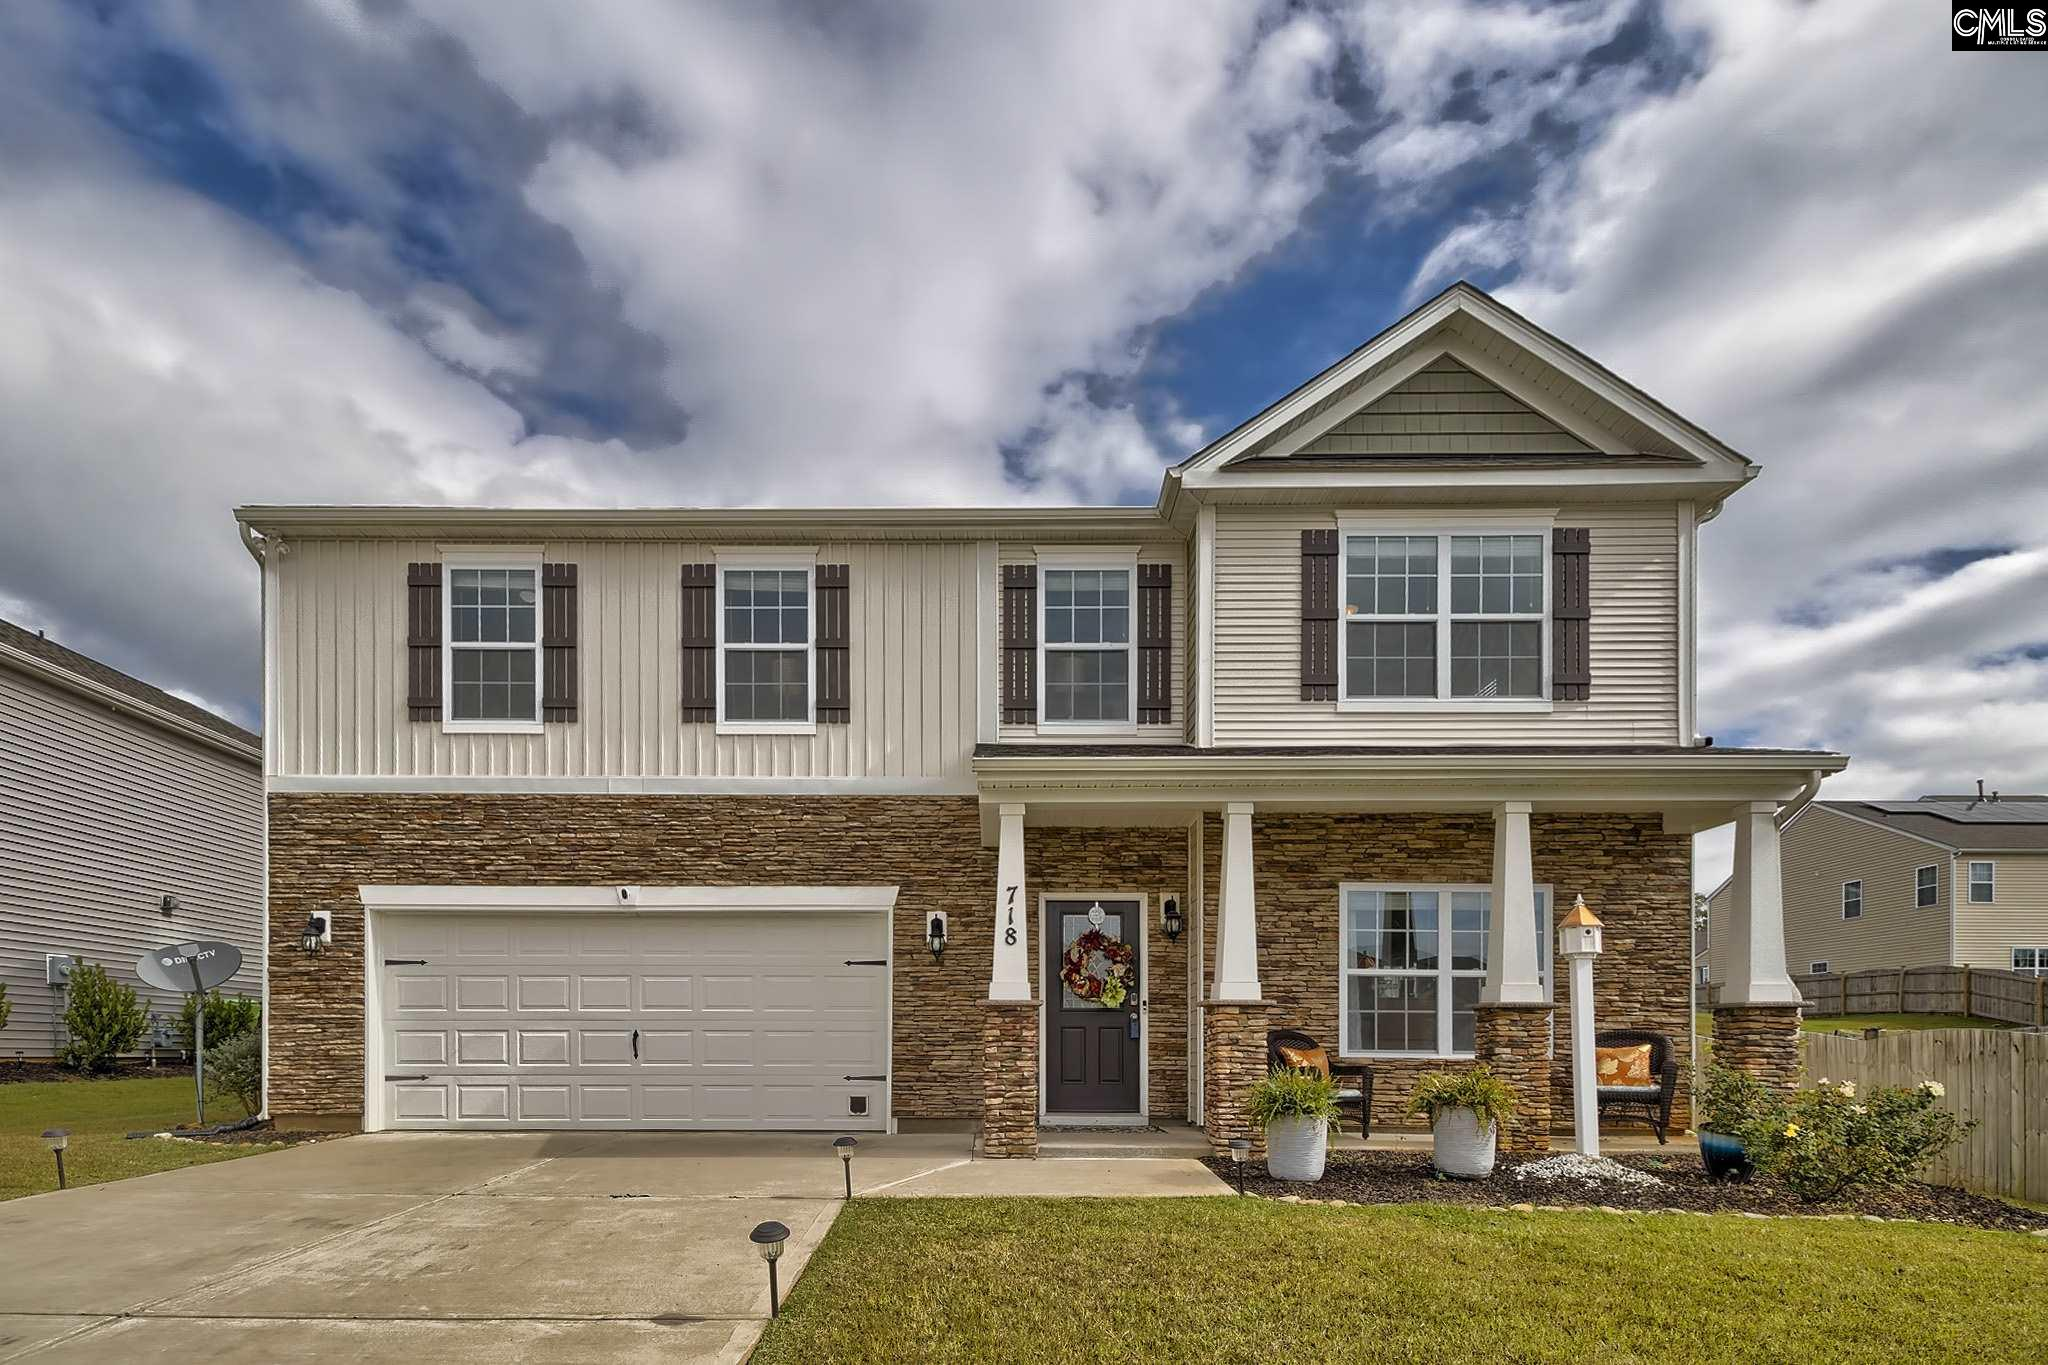 718 Cape Horn Chapin, SC 29036